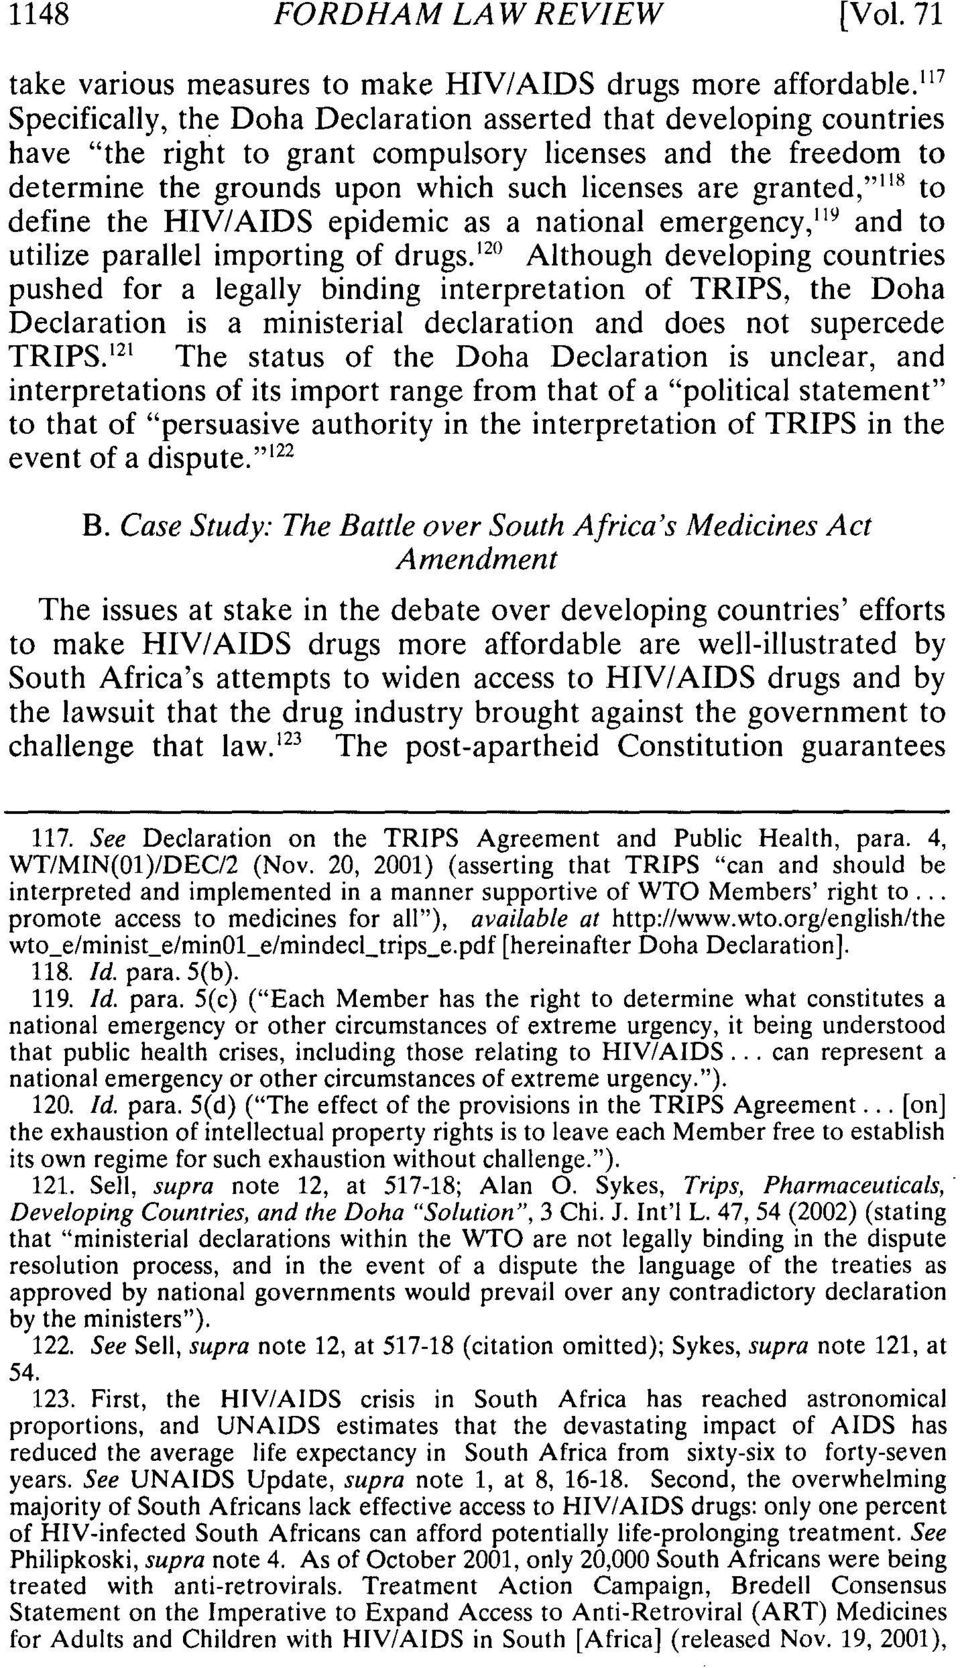 "granted,"""" 1 ' to define the HIV/AIDS epidemic as a national emergency,"" 9 and to utilize parallel importing of drugs."